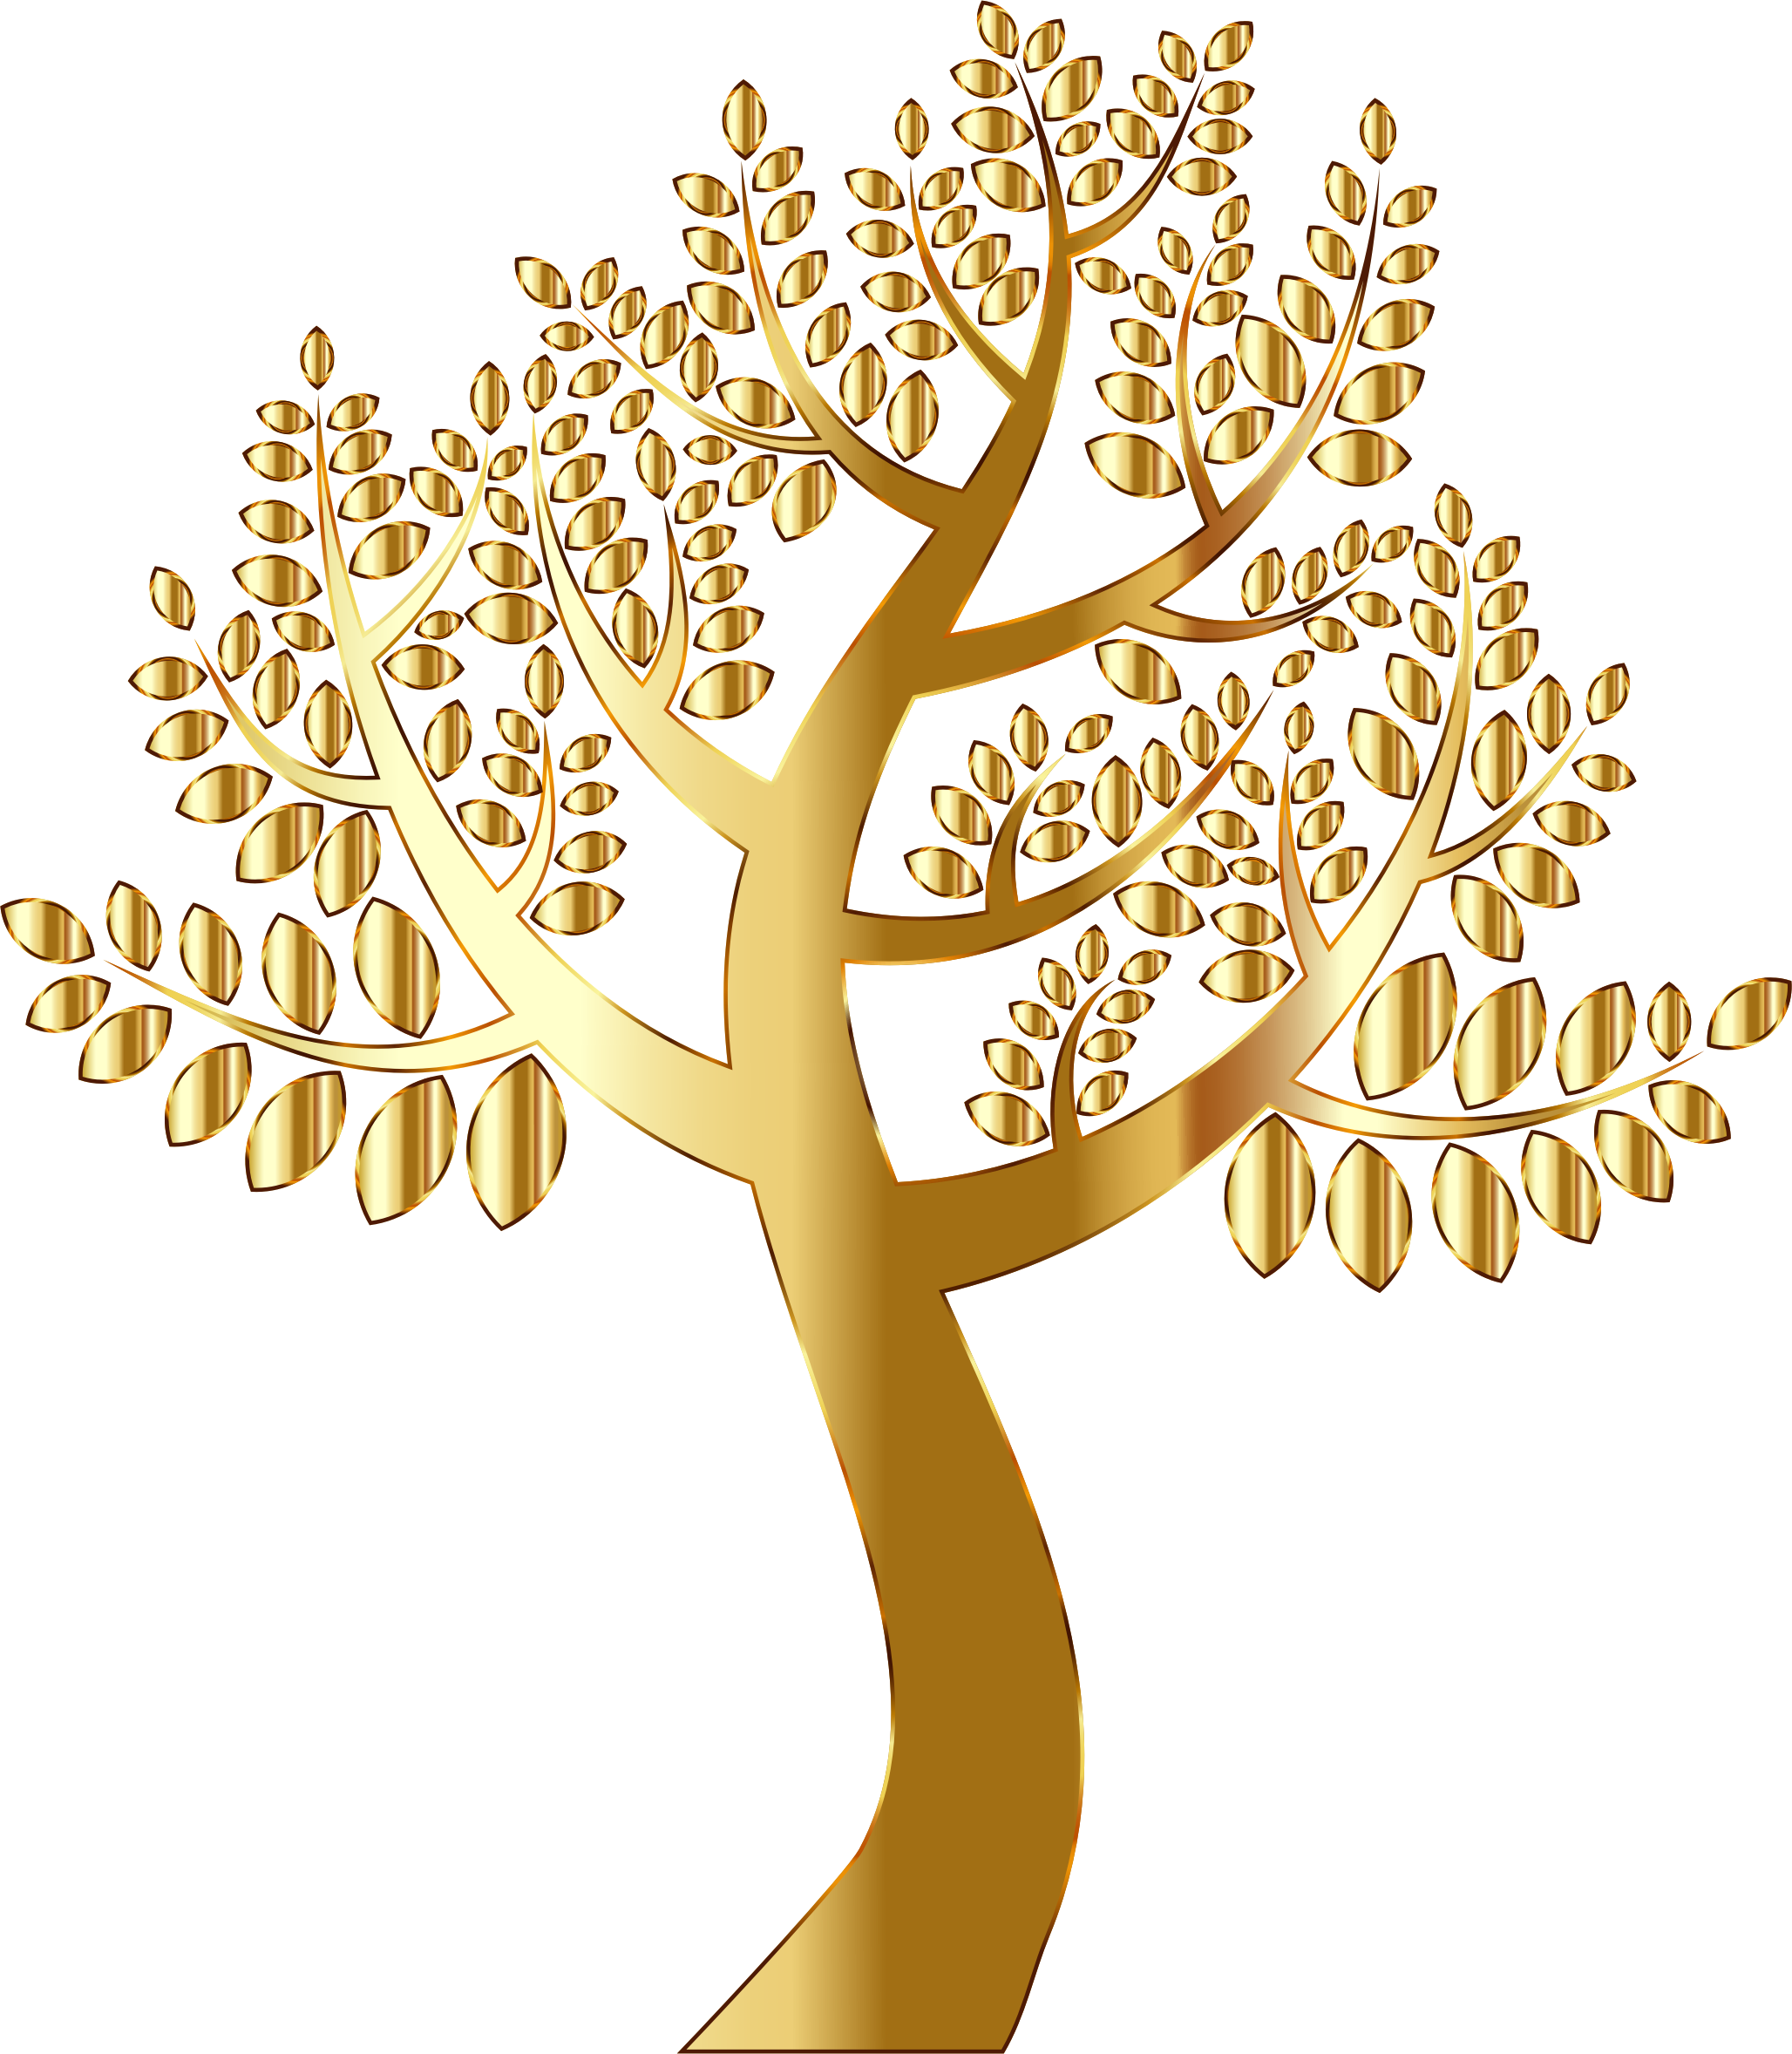 Tree clipart background vector freeuse library Clipart - Simple Gold Tree Without Background vector freeuse library